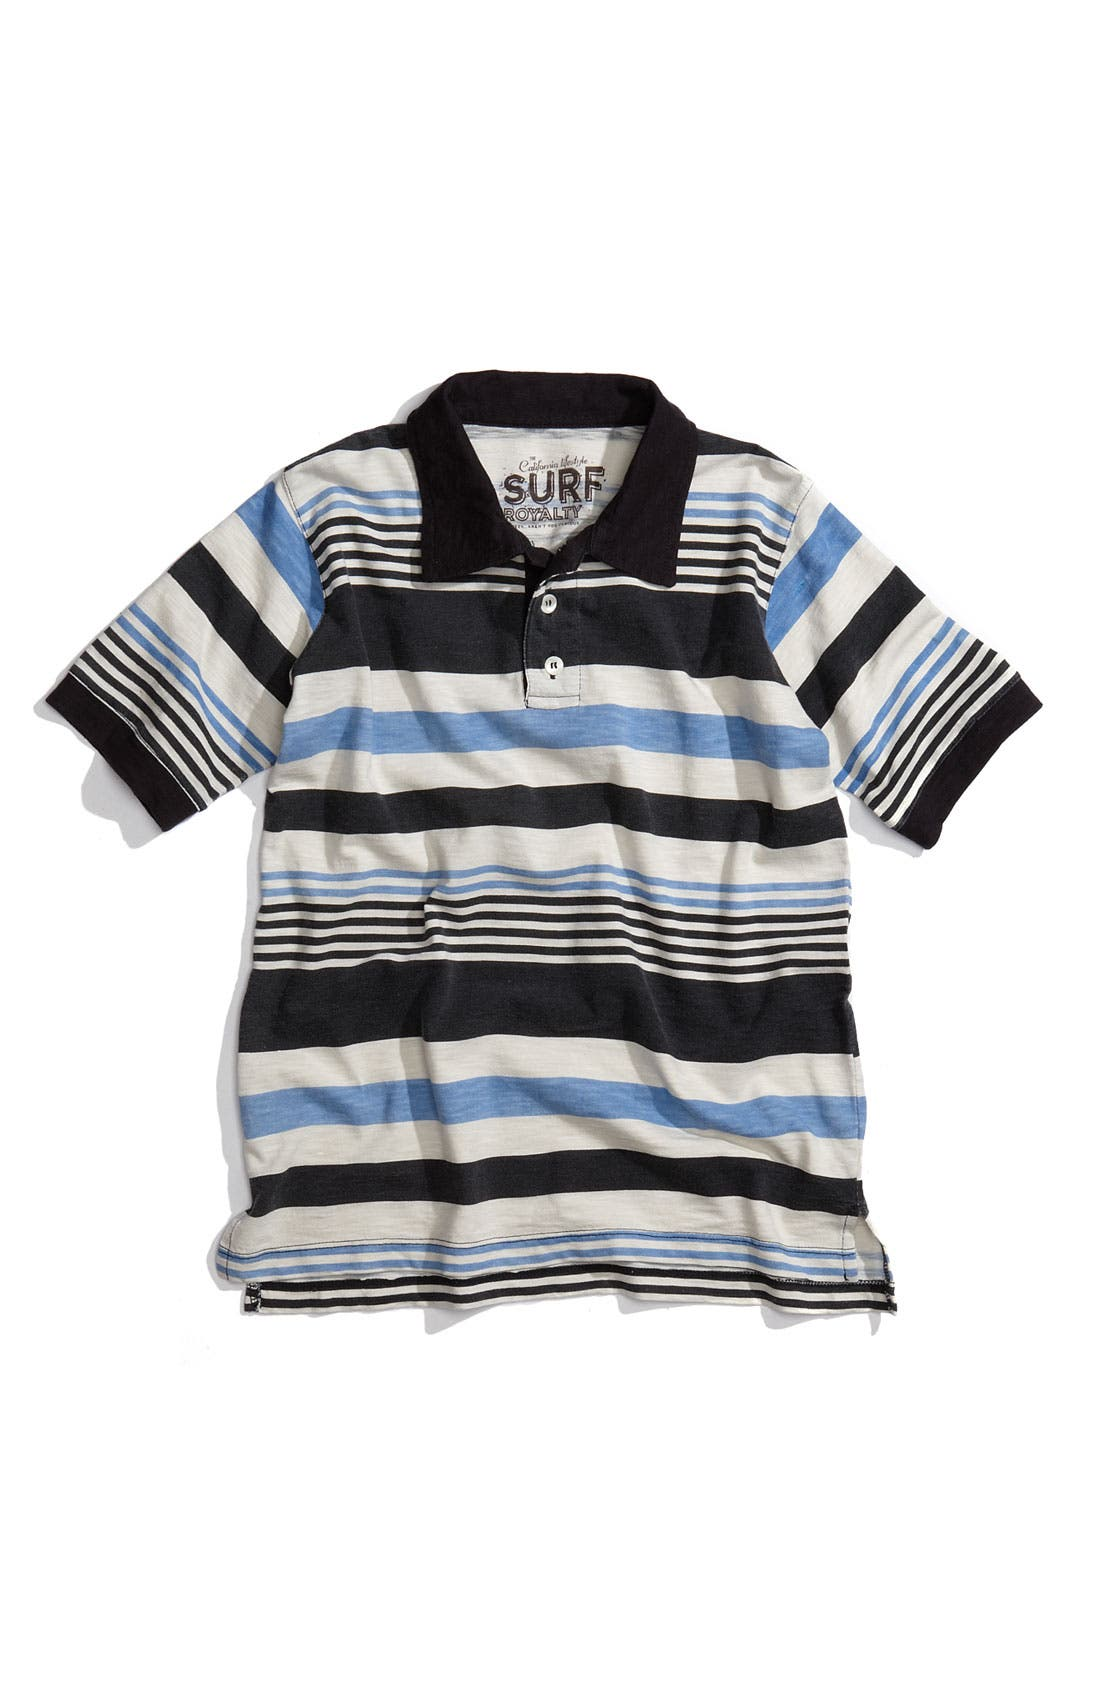 Main Image - Peek 'Malibu Stripe' Polo (Toddler)